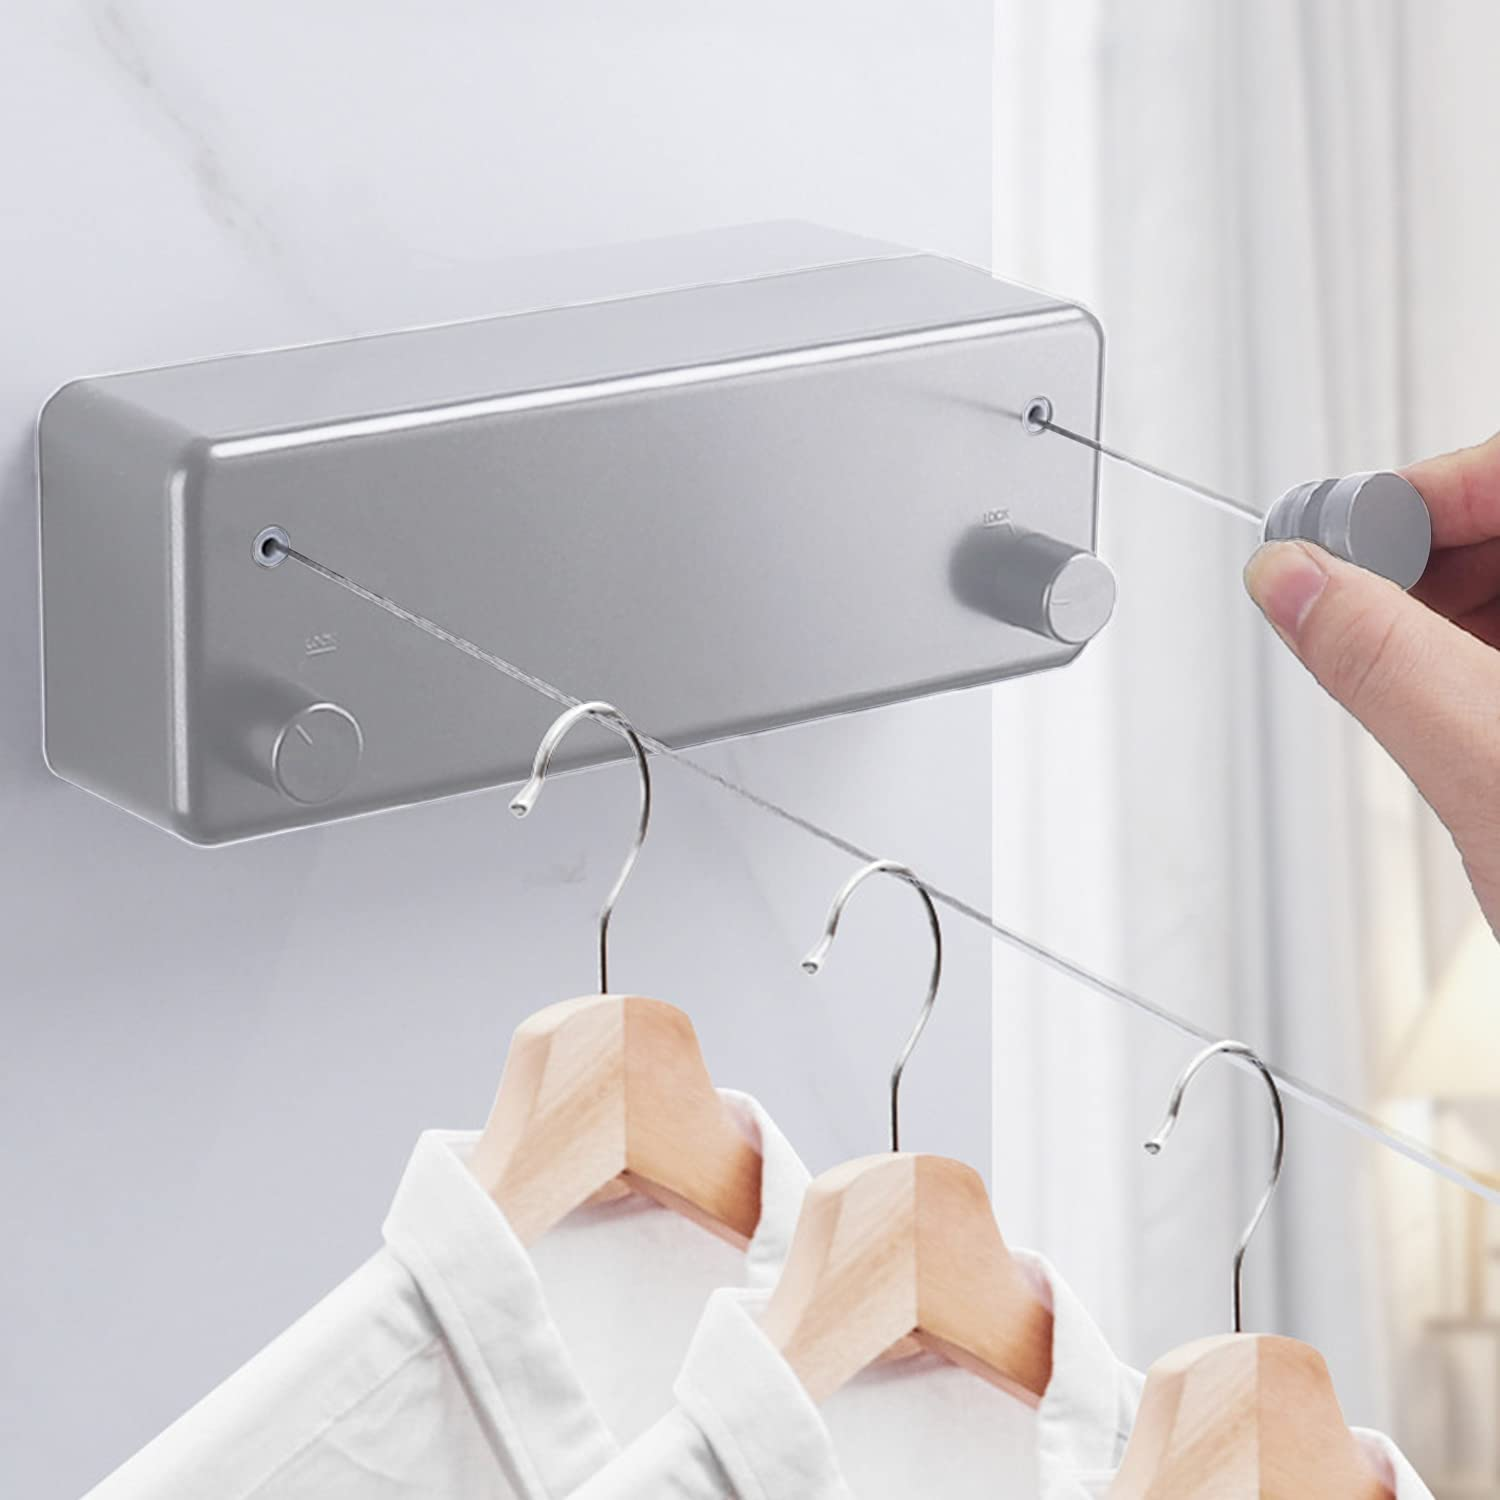 Retractable Clothesline - 13.8Feet Popularity Dry Extendable Steel Clothes Limited price sale